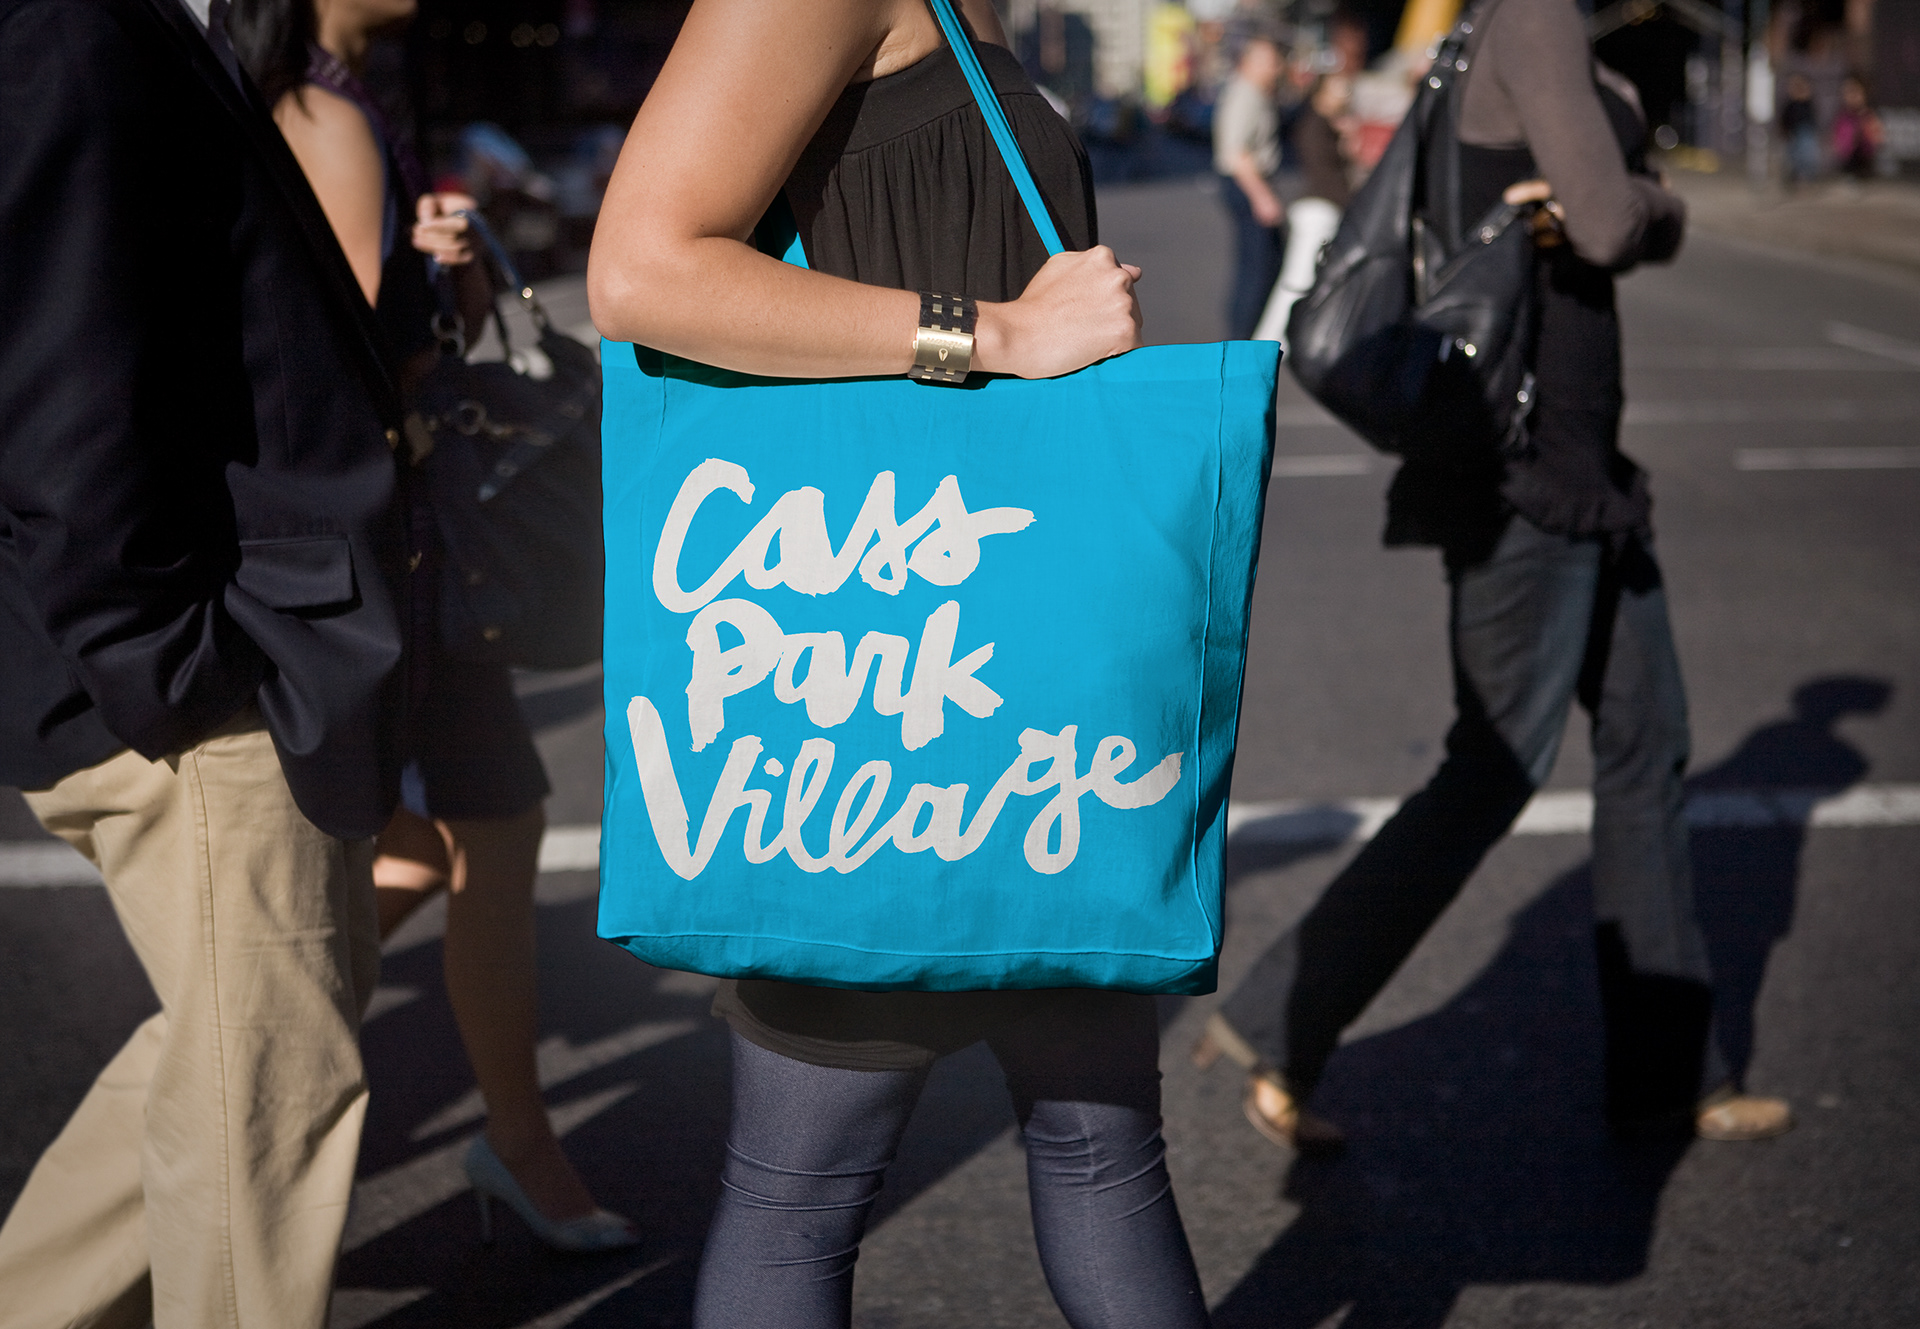 cass-park-village-bag.jpg